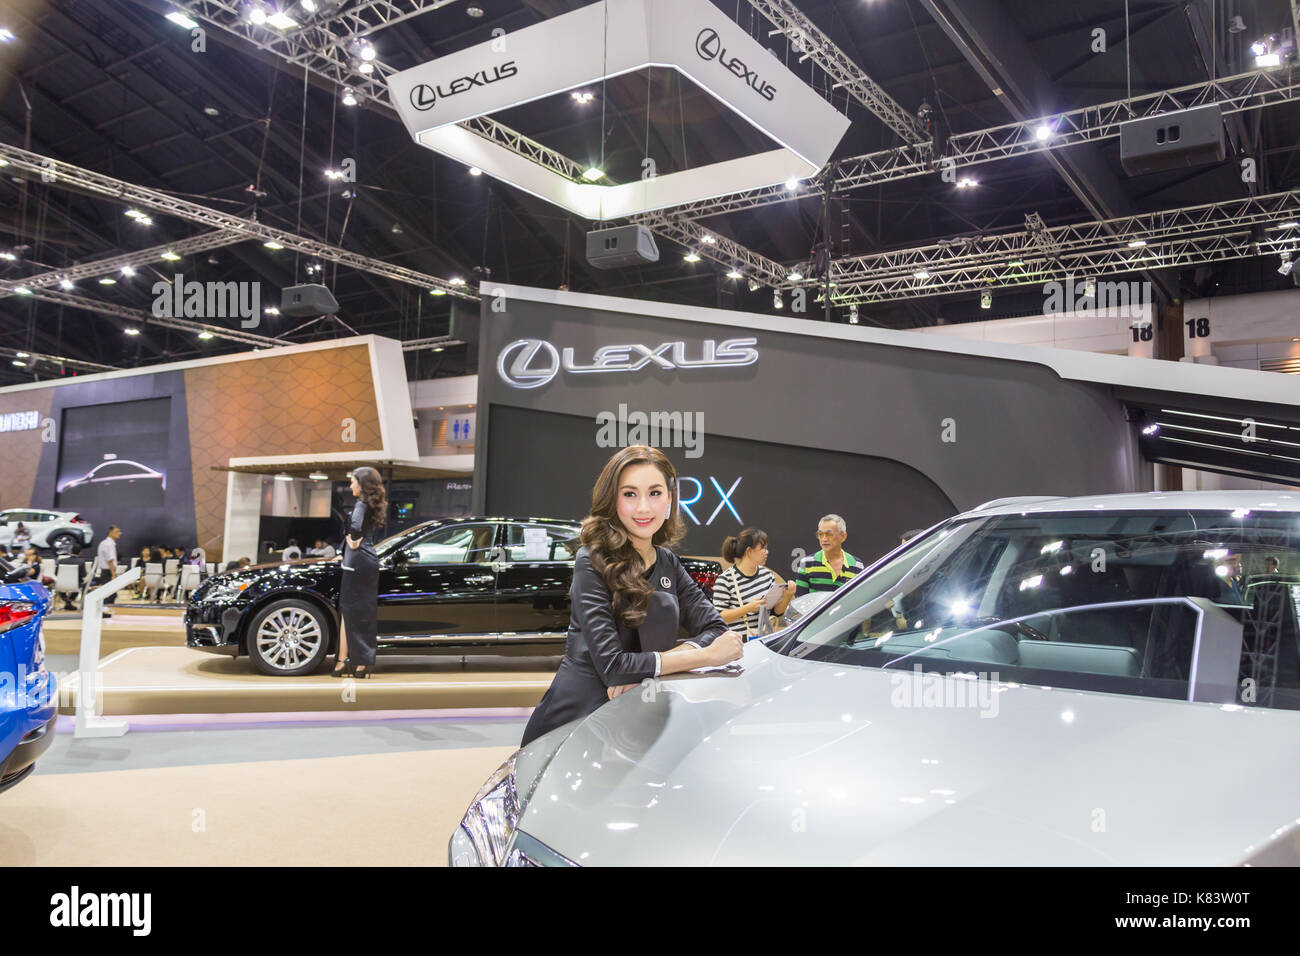 Bangkok, Thailand - December 11, 2016 : Unidentified model with Lexus car  at The 33nd Thailand International Motor Expo on  December 11,2016 in Bangk - Stock Image